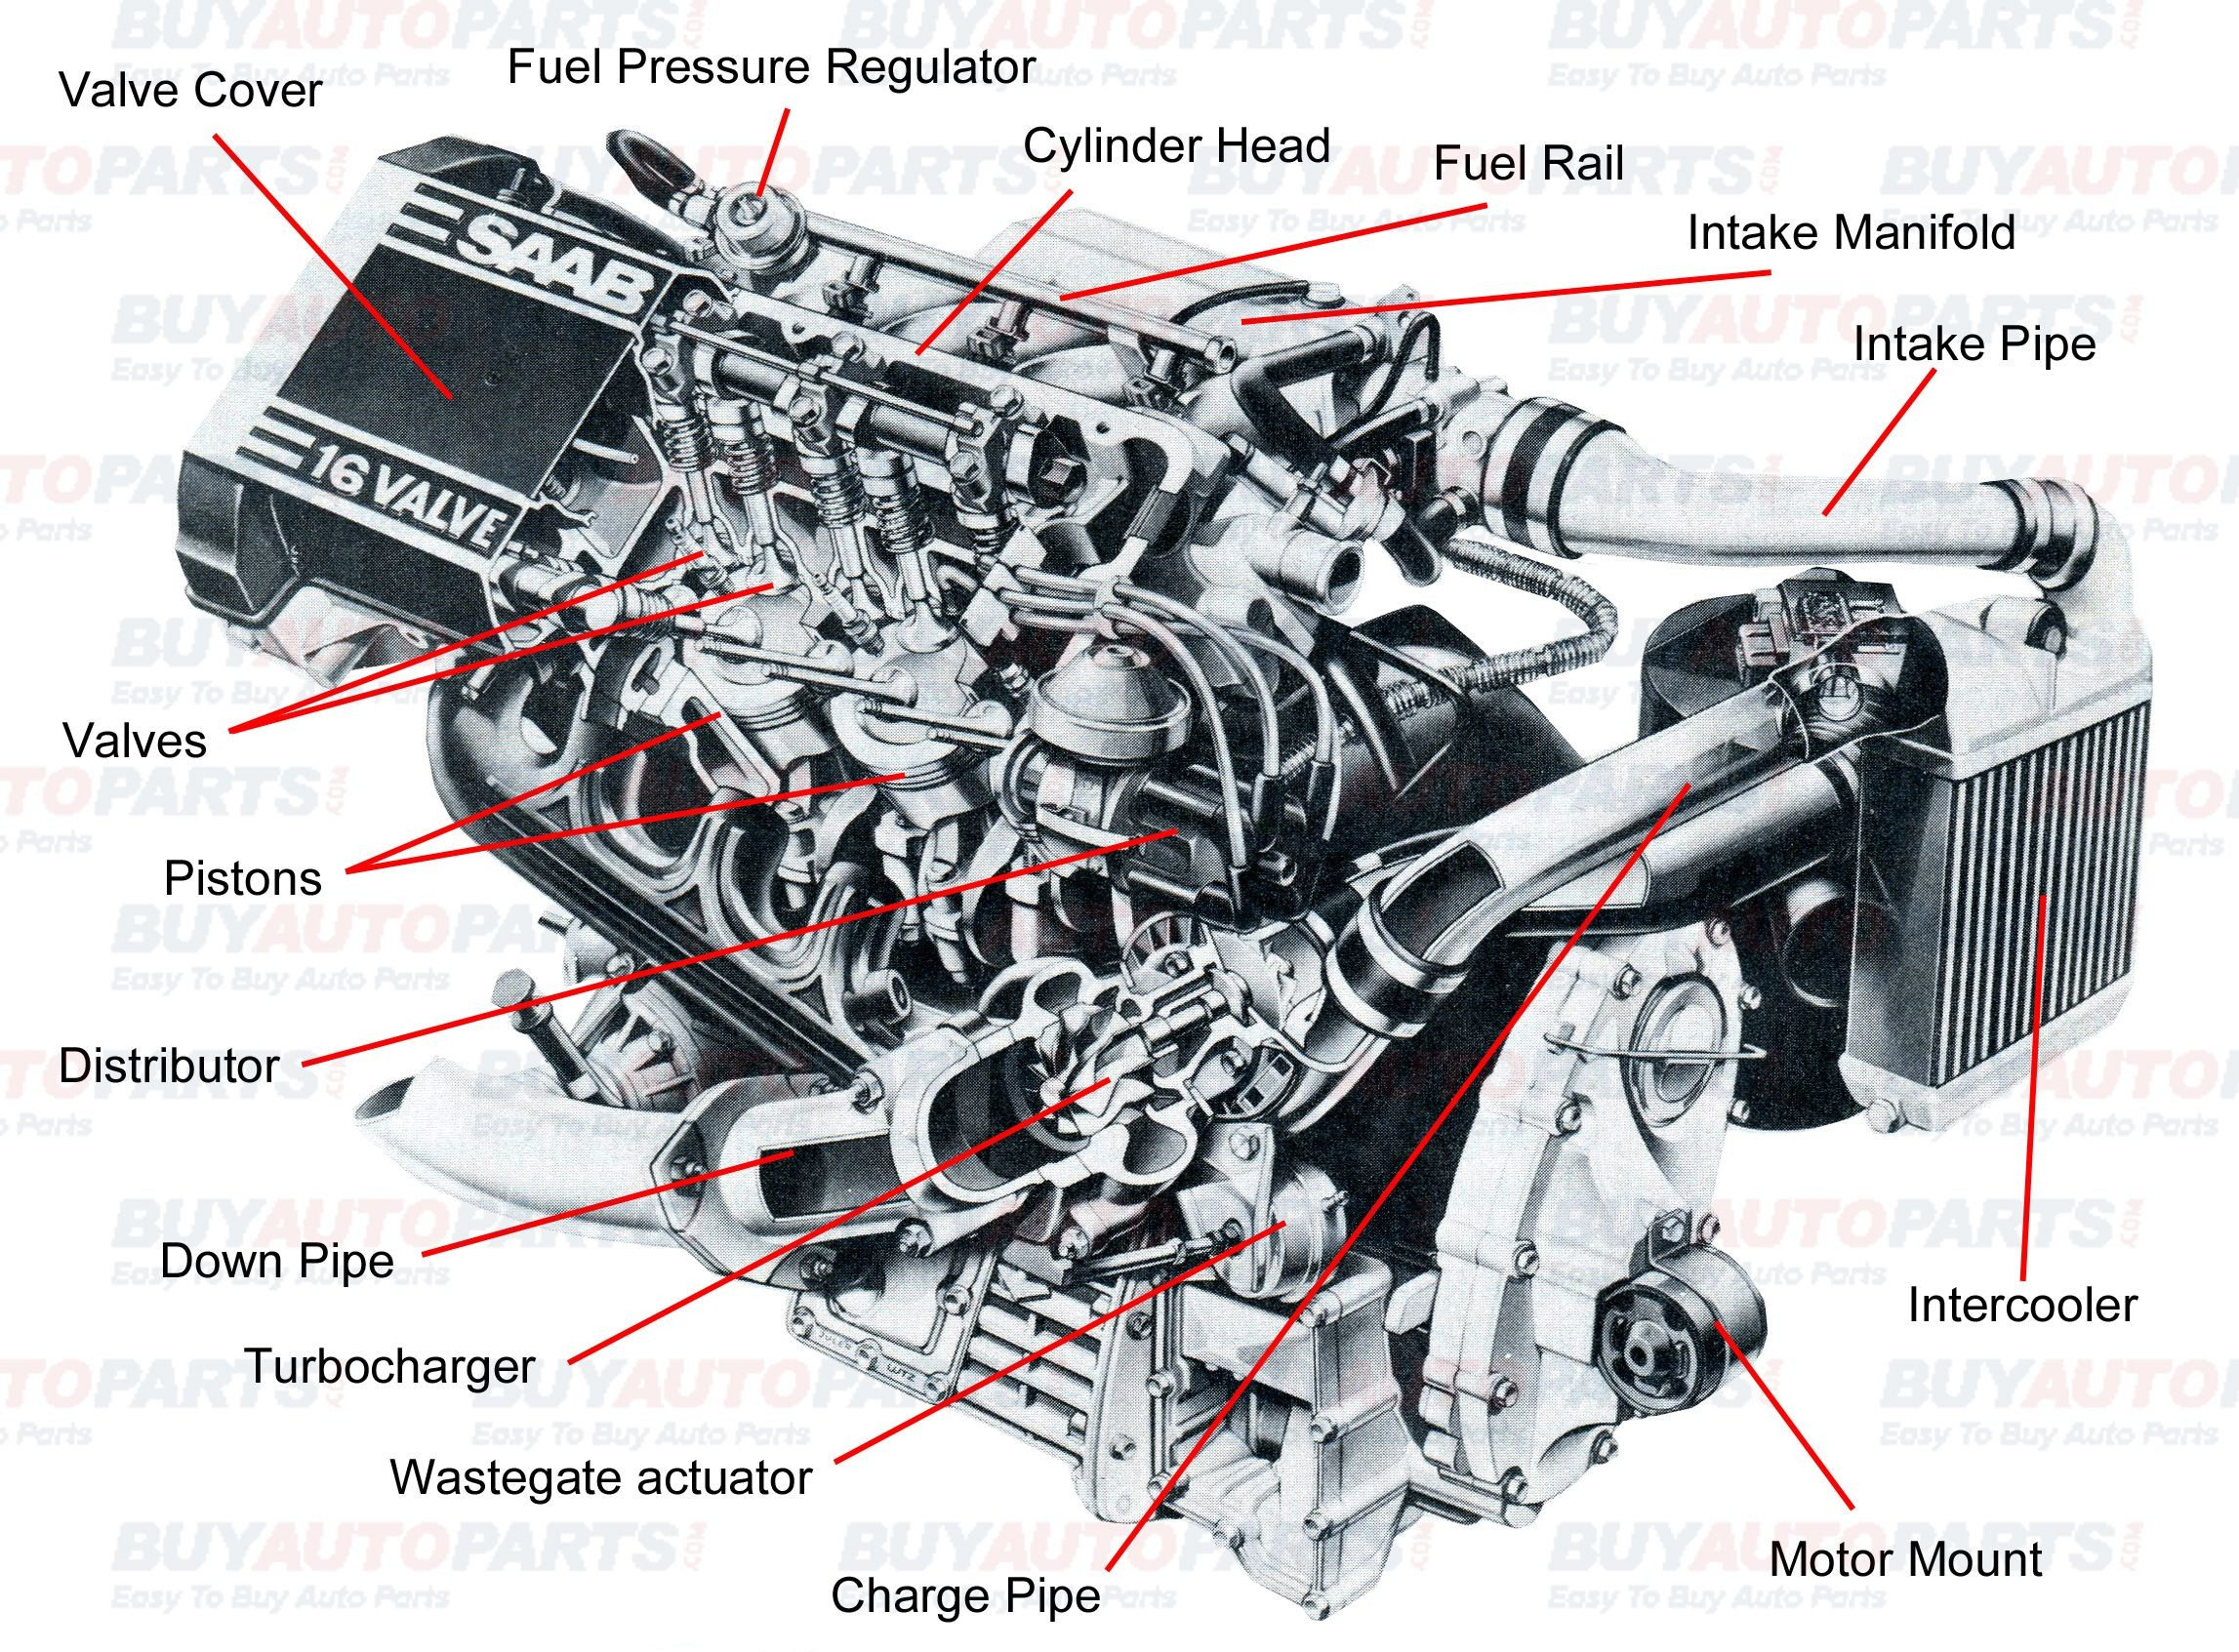 Diagram Of A V8 Engine Pin by Jimmiejanet Testellamwfz On What Does An Engine with Turbo Of Diagram Of A V8 Engine